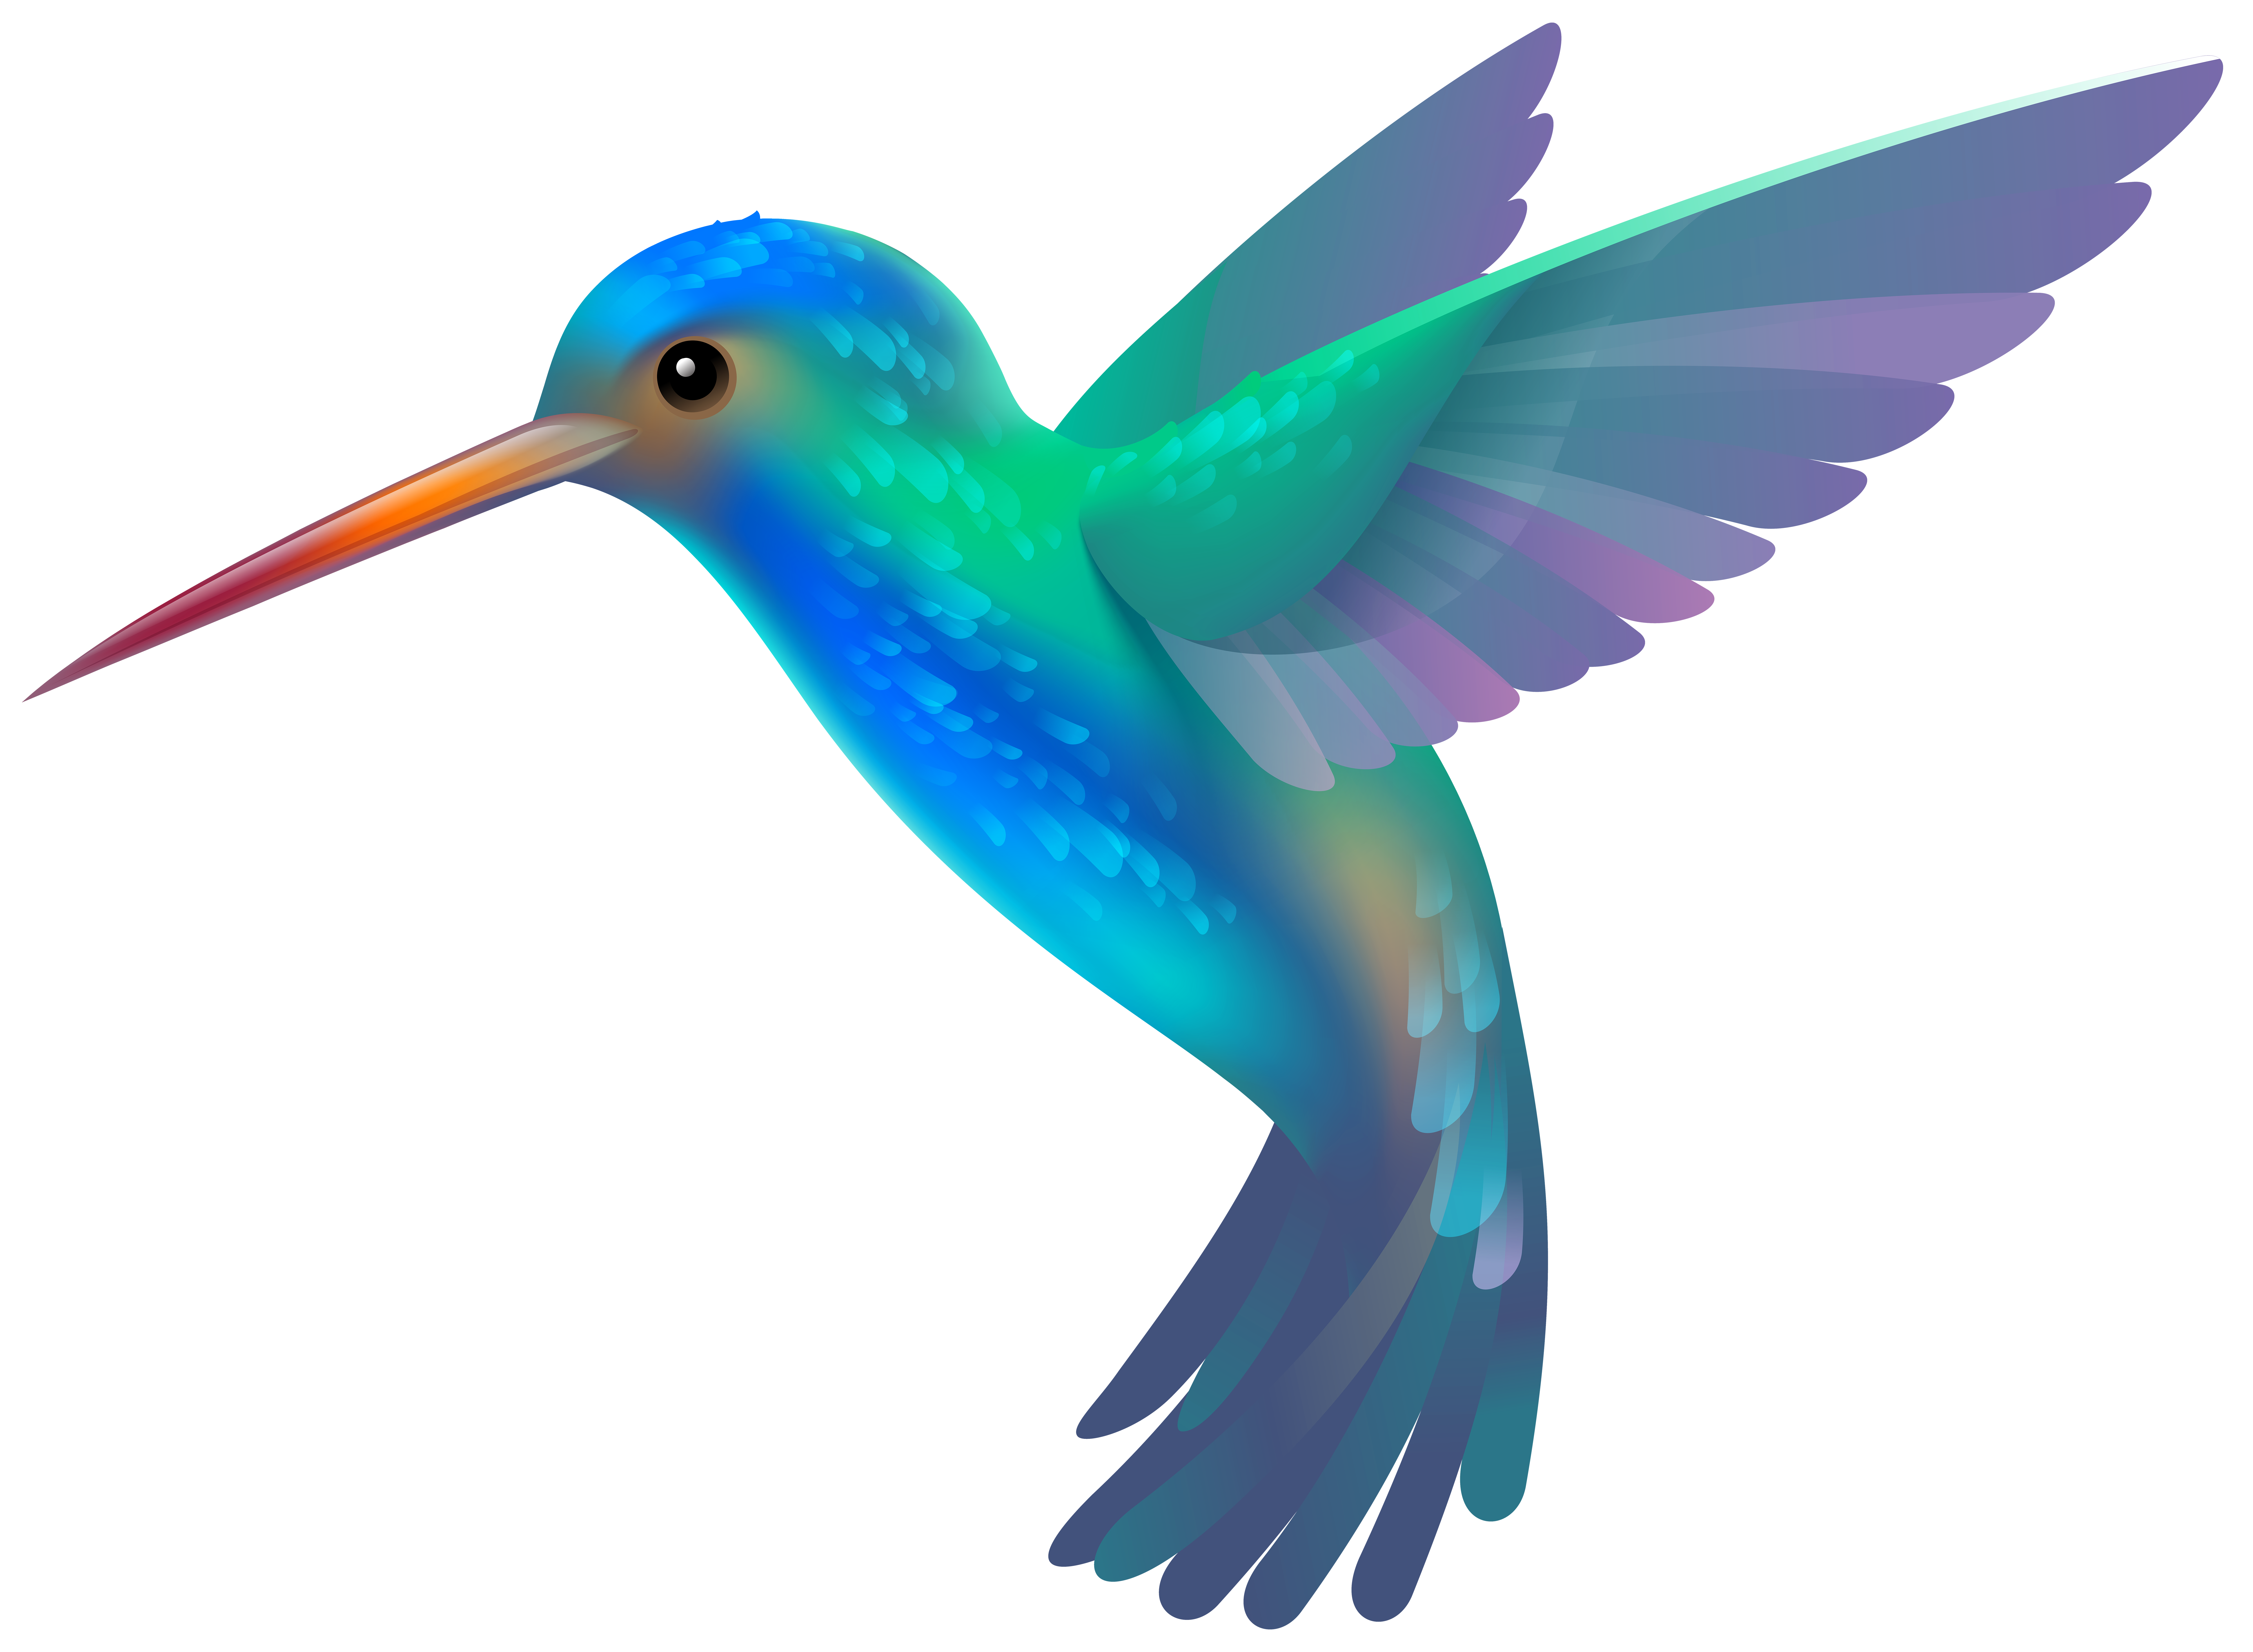 Png clip art image. Hummingbird transparent banner free library